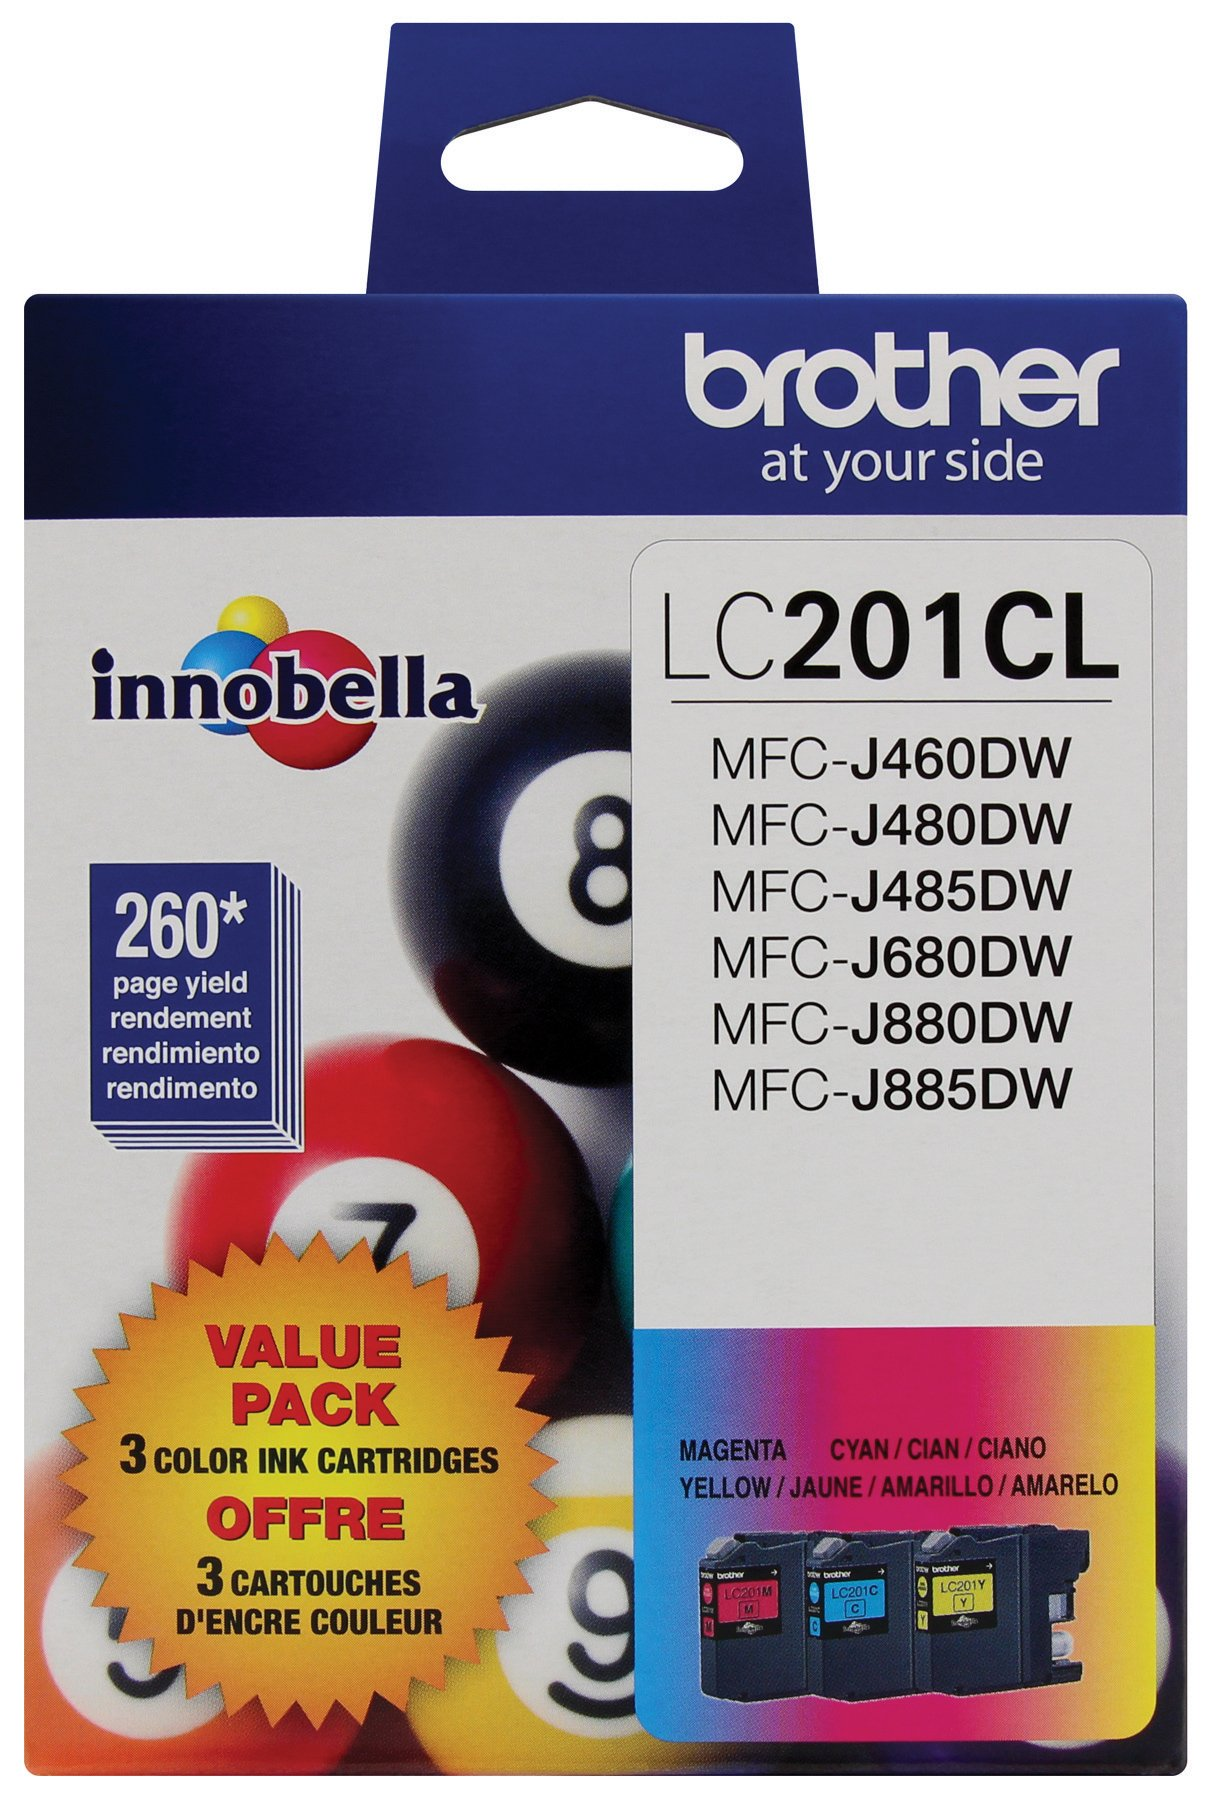 Brother Genuine Standard Yield Color Ink Cartridges, LC2013PKS, Replacement Color Ink Three Pack, Includes 1 Cartridge Each of Cyan, Magenta & Yellow, Page Yield Up To 260 Pages/cartridge, LC203